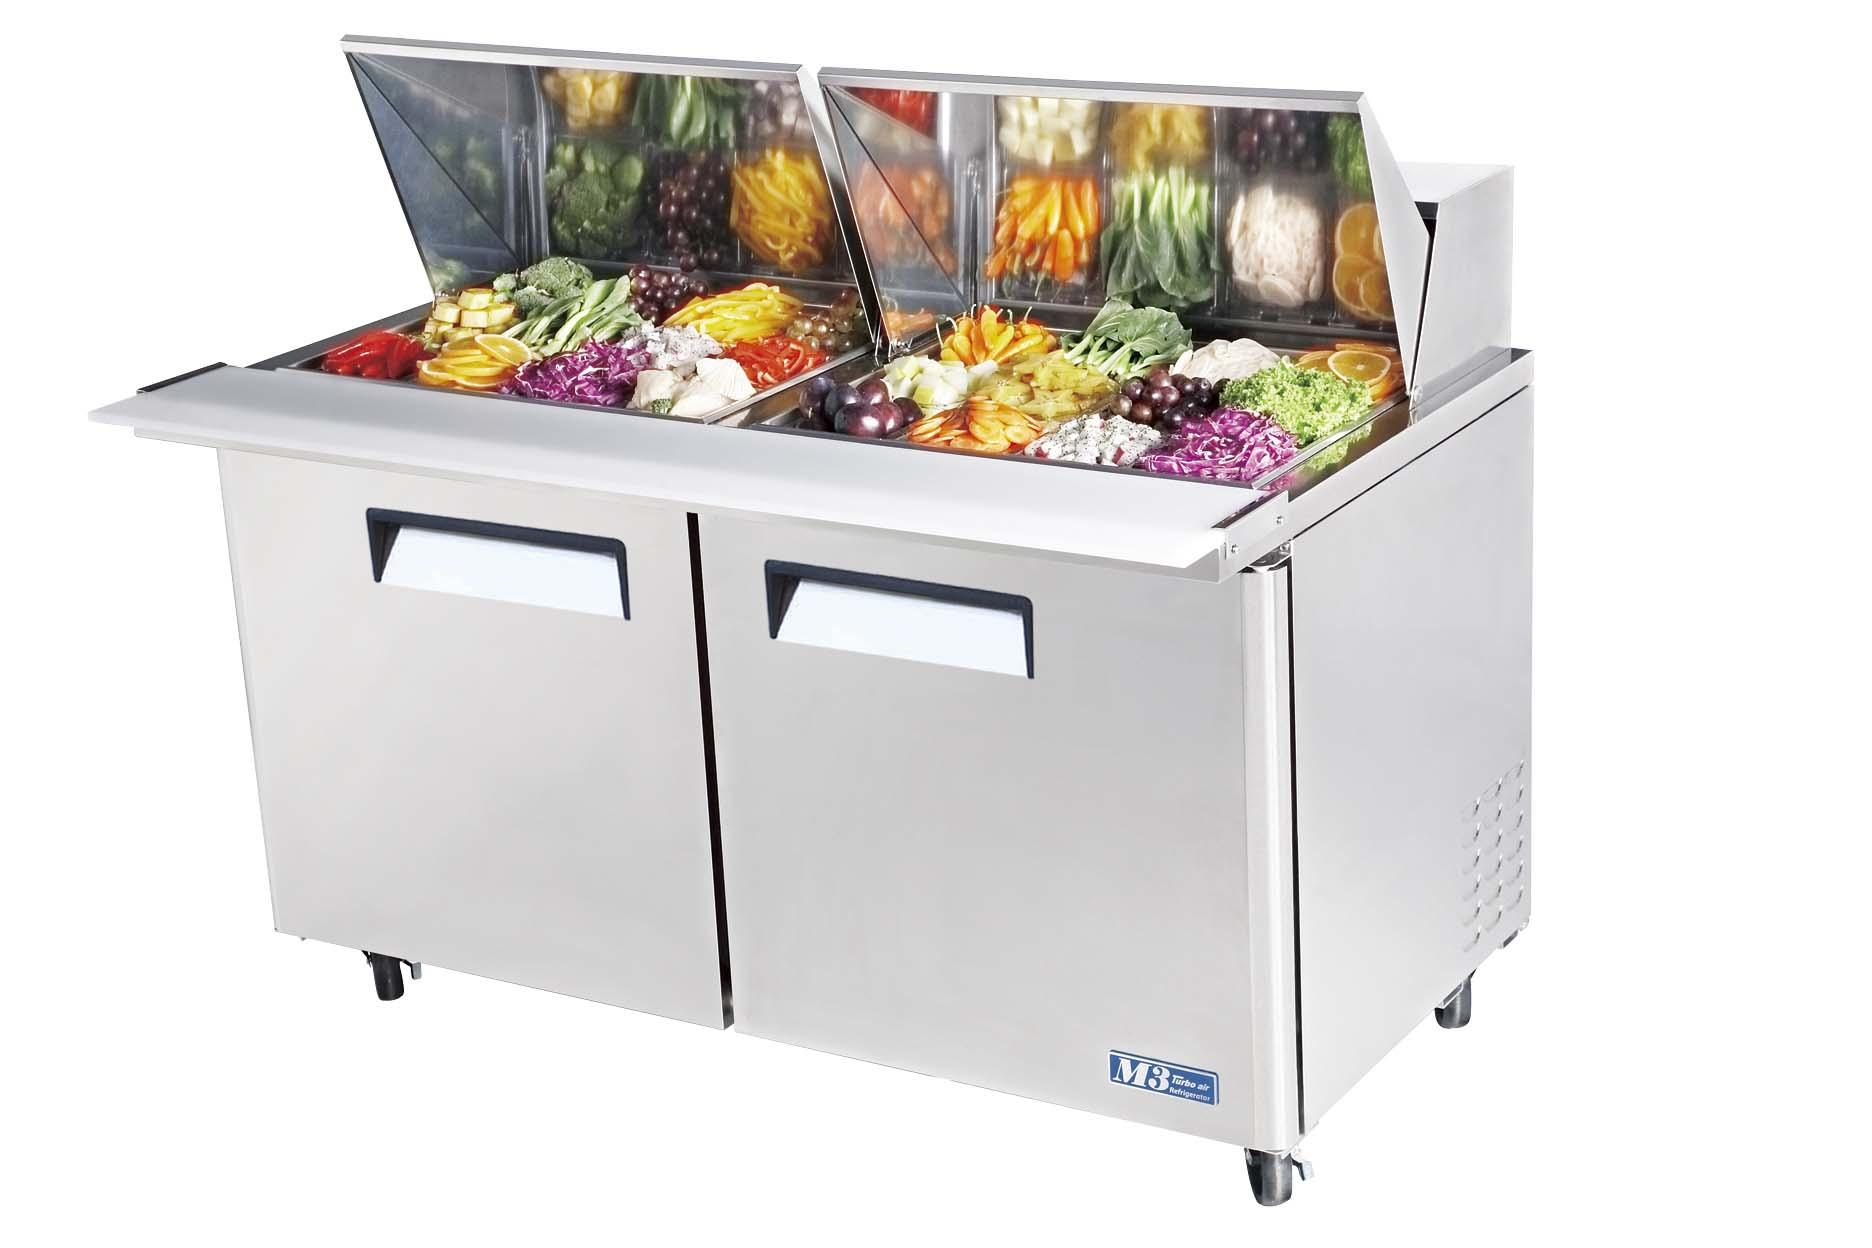 Restaurant Kitchen Tables Brrr Refrigeration Design Inc Prep Tables